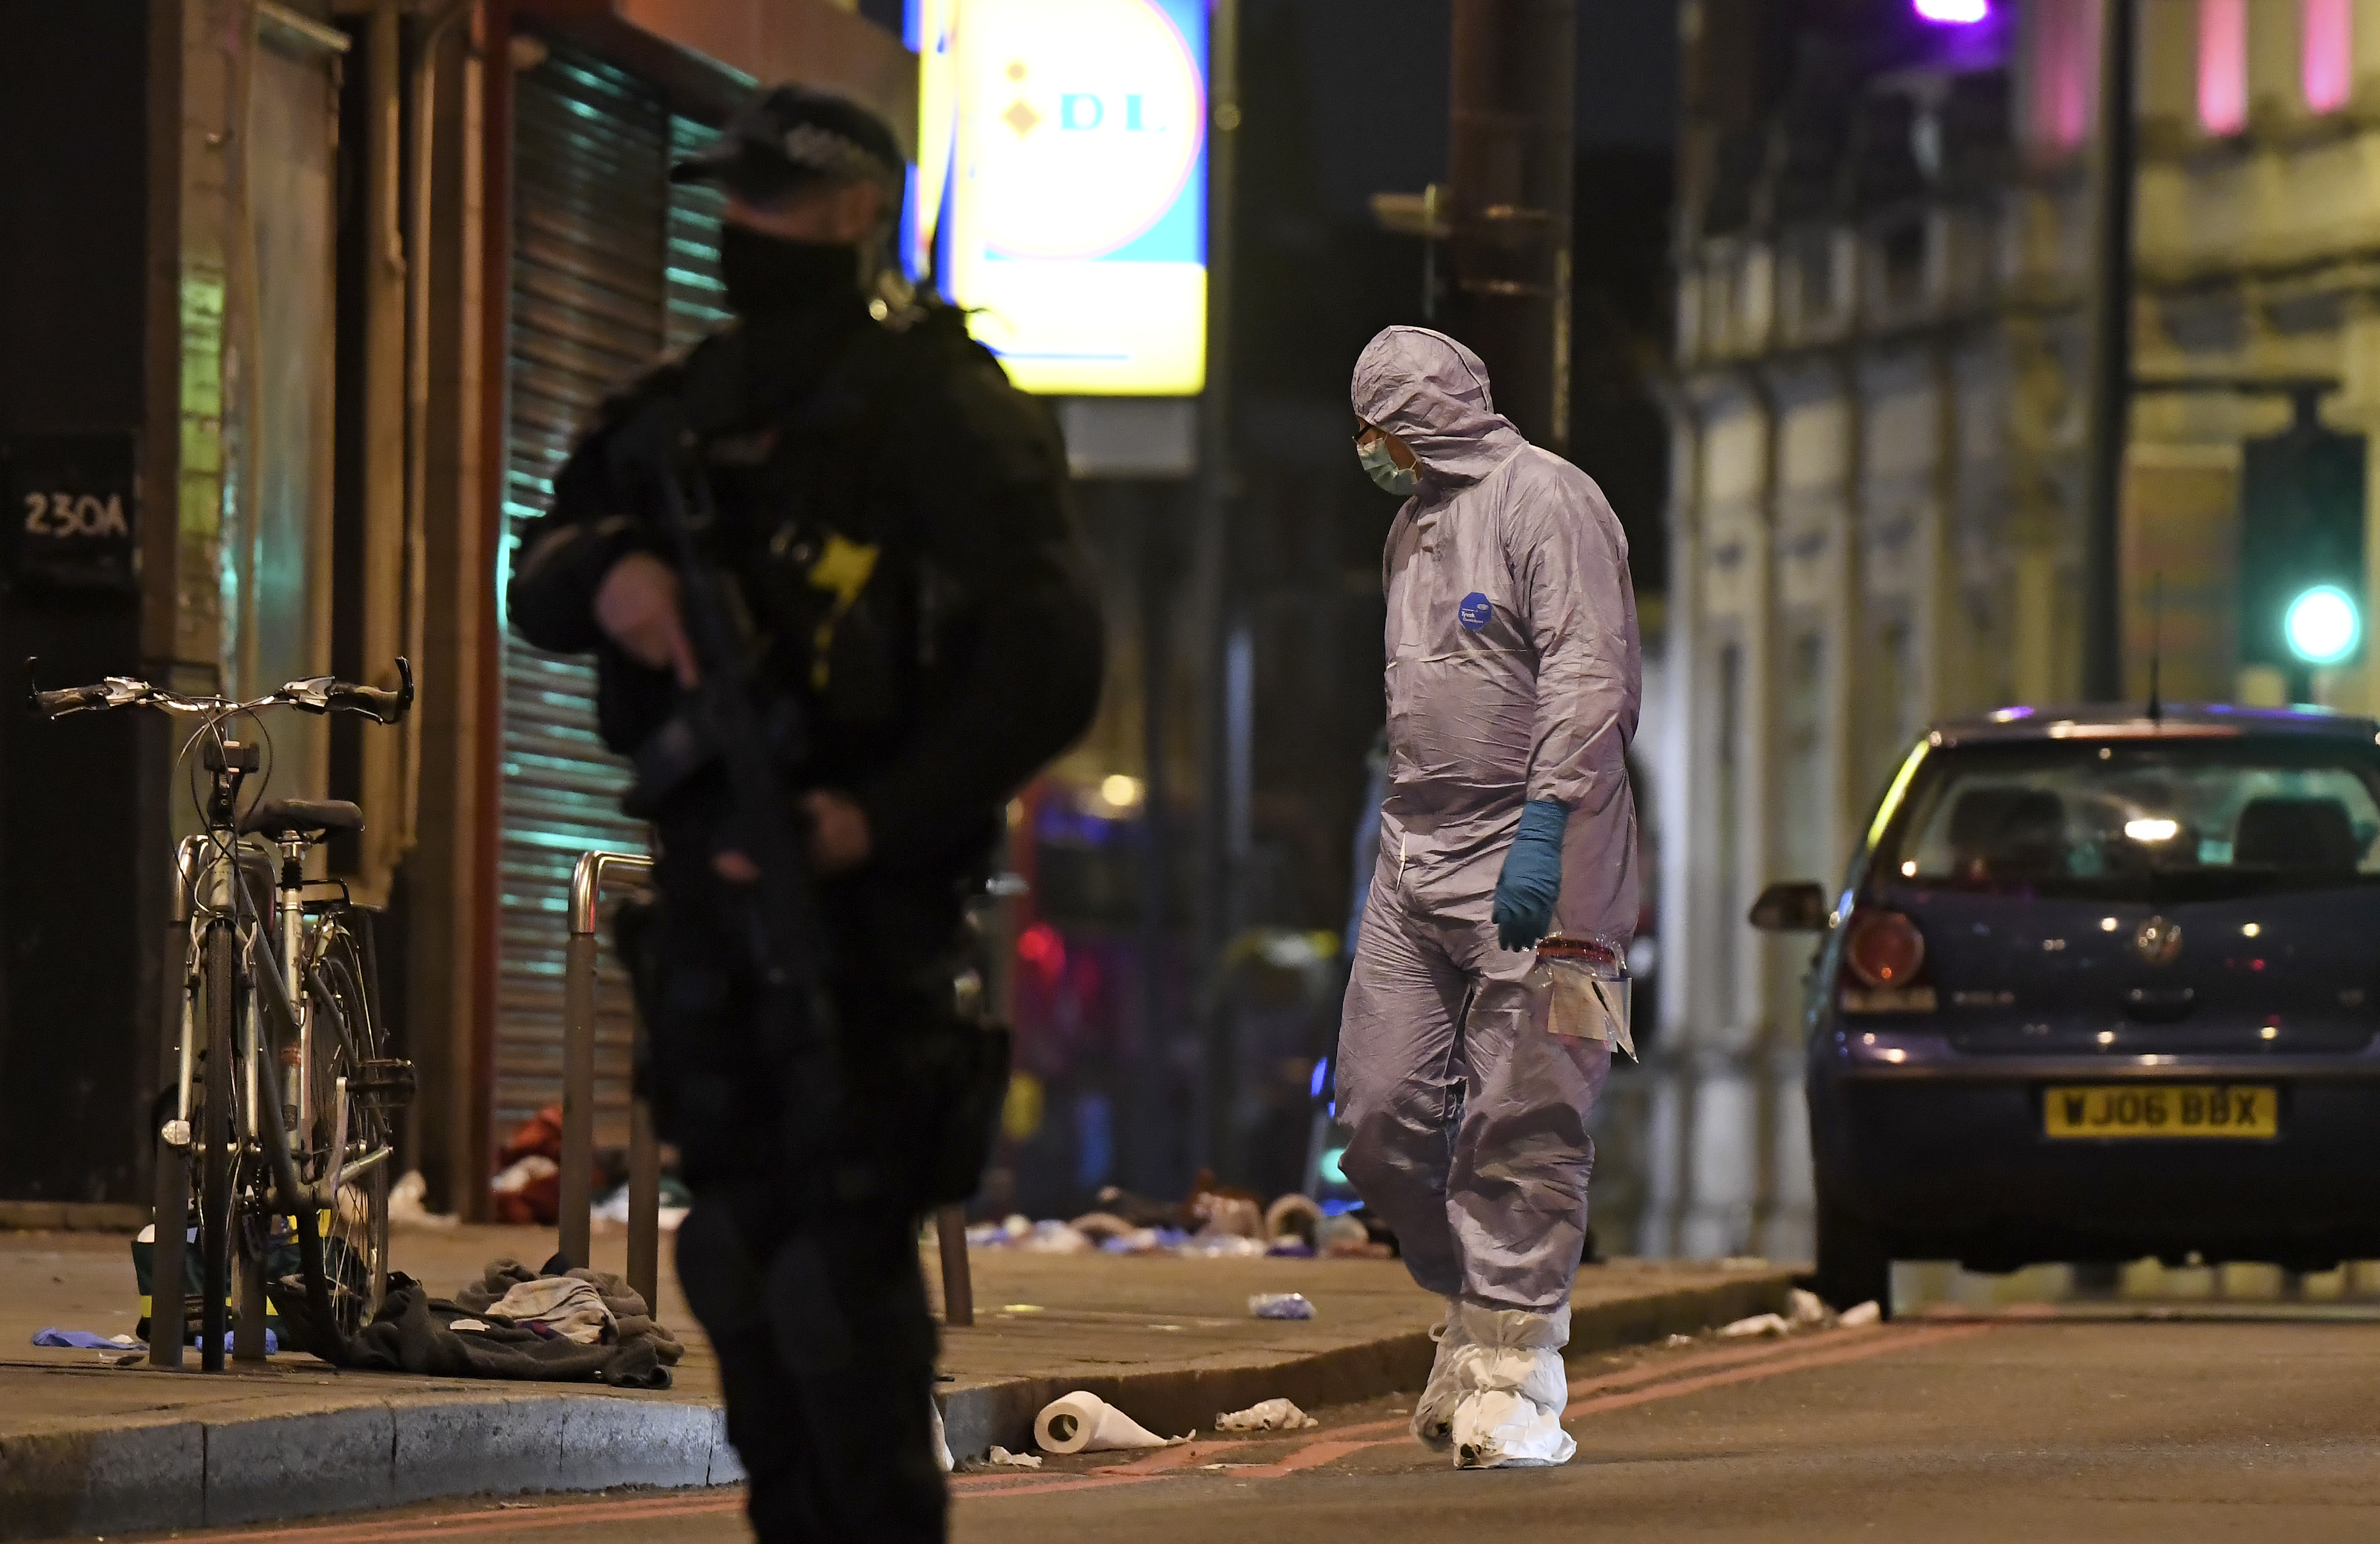 A police forensic officer looks around near the scene after a stabbing incident in Streatham London, England, Sunday, Feb. 2, 2020. London police officers shot and killed a suspect after at least two people were stabbed Sunday in what authorities are investigating as a terror attack.